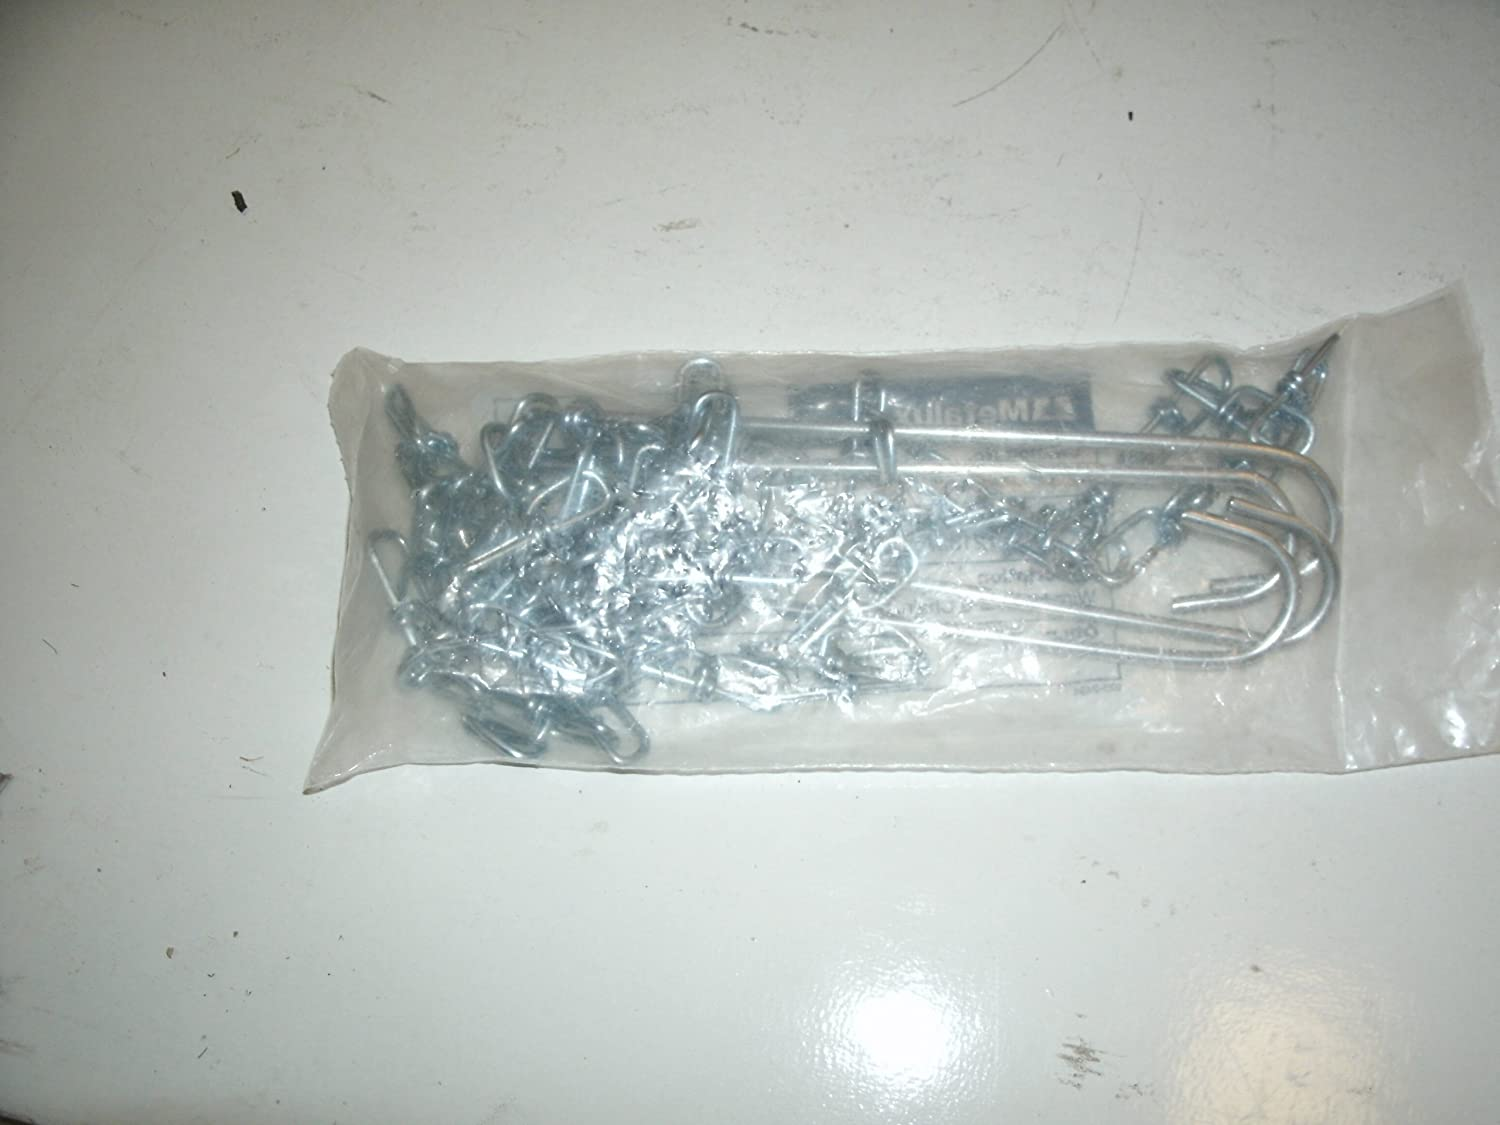 Metalux 36-in Stainless Steel Chain Cable Item#402237 Model# WHC36RT UPC# 080083601158